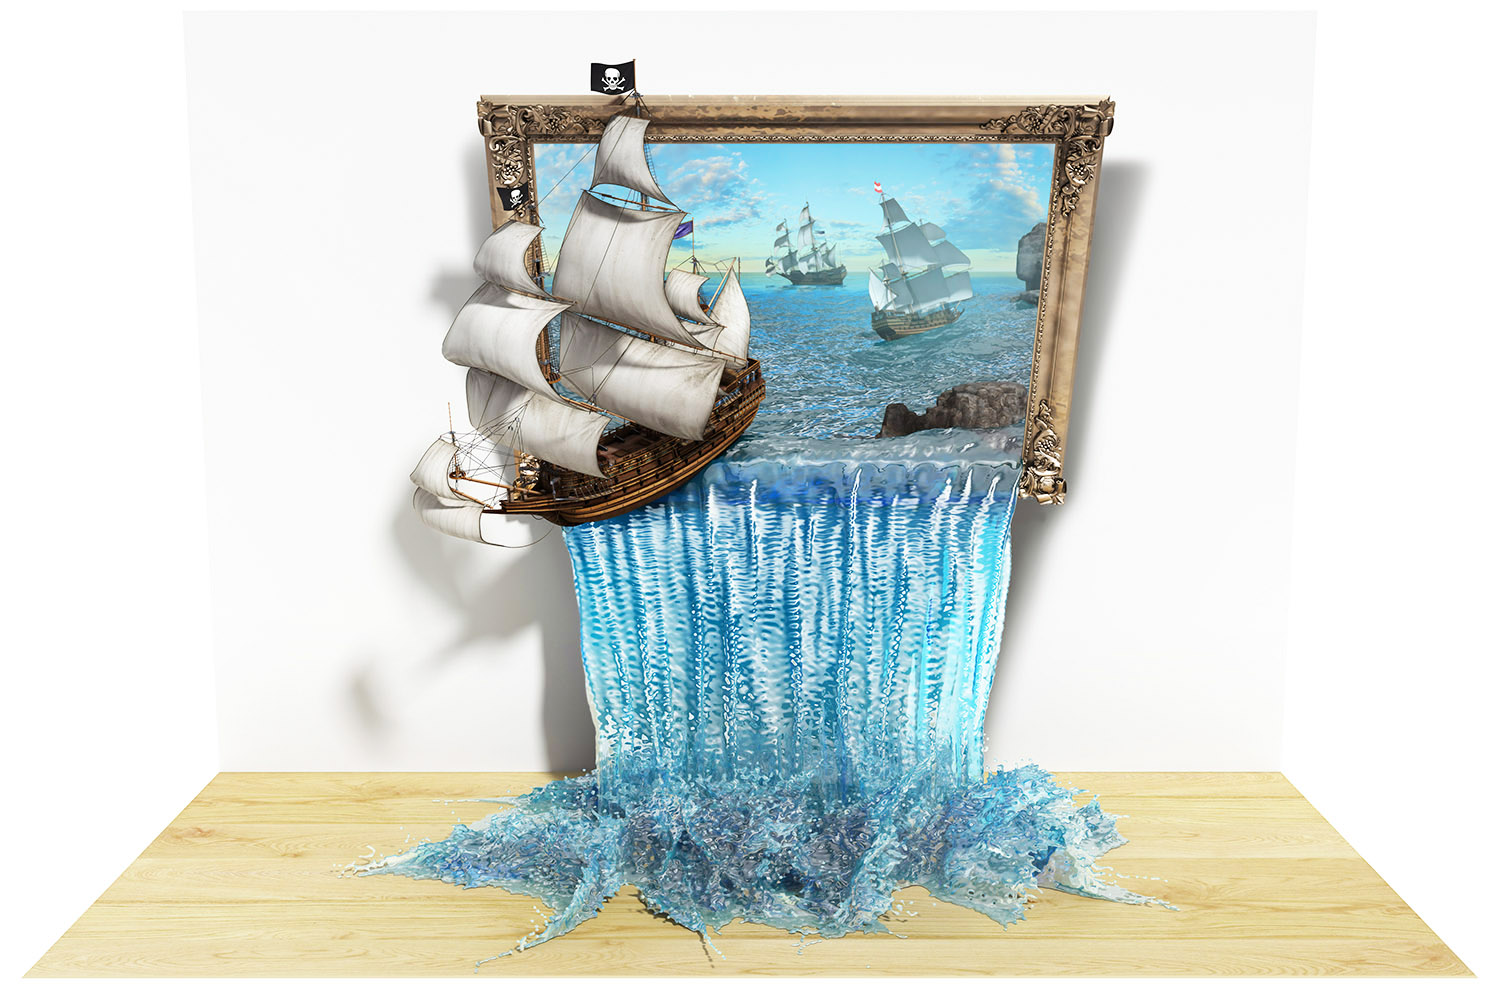 3DPicArtMuseum_Piratenschiff_FINAL